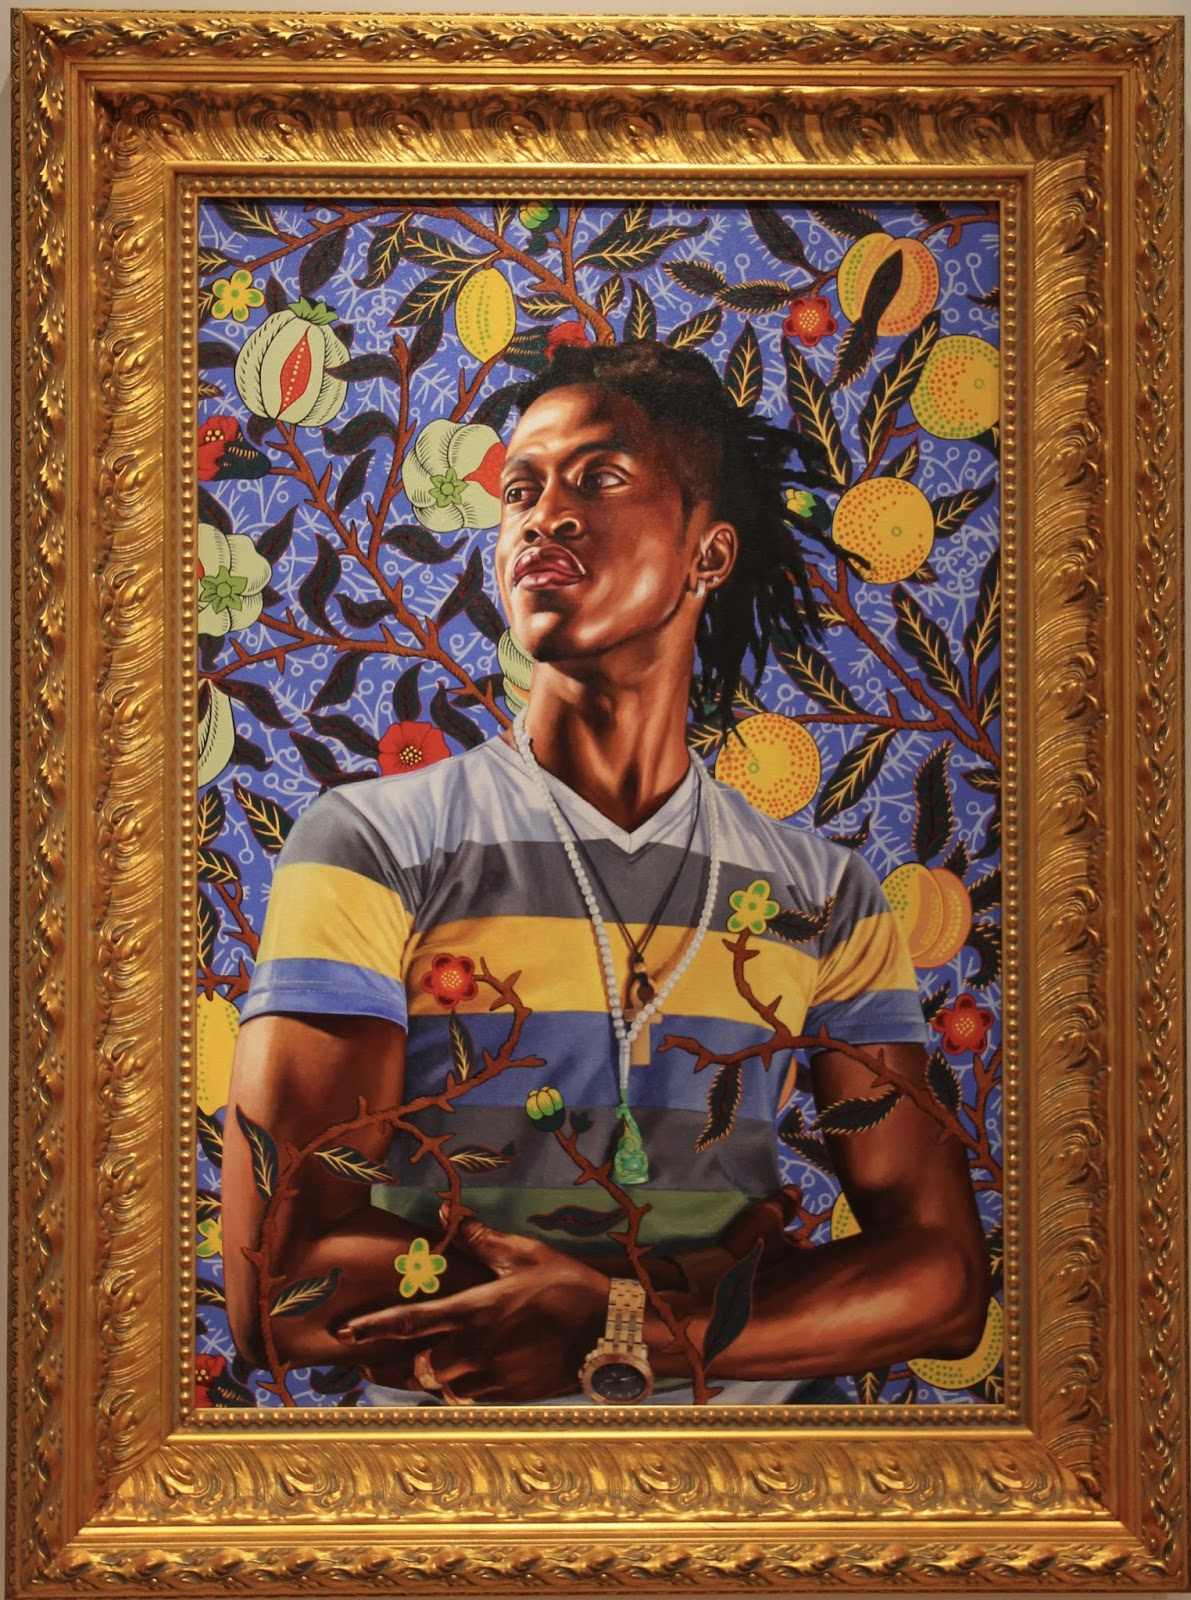 Naples and Hartford in Season: Kehinde Wiley